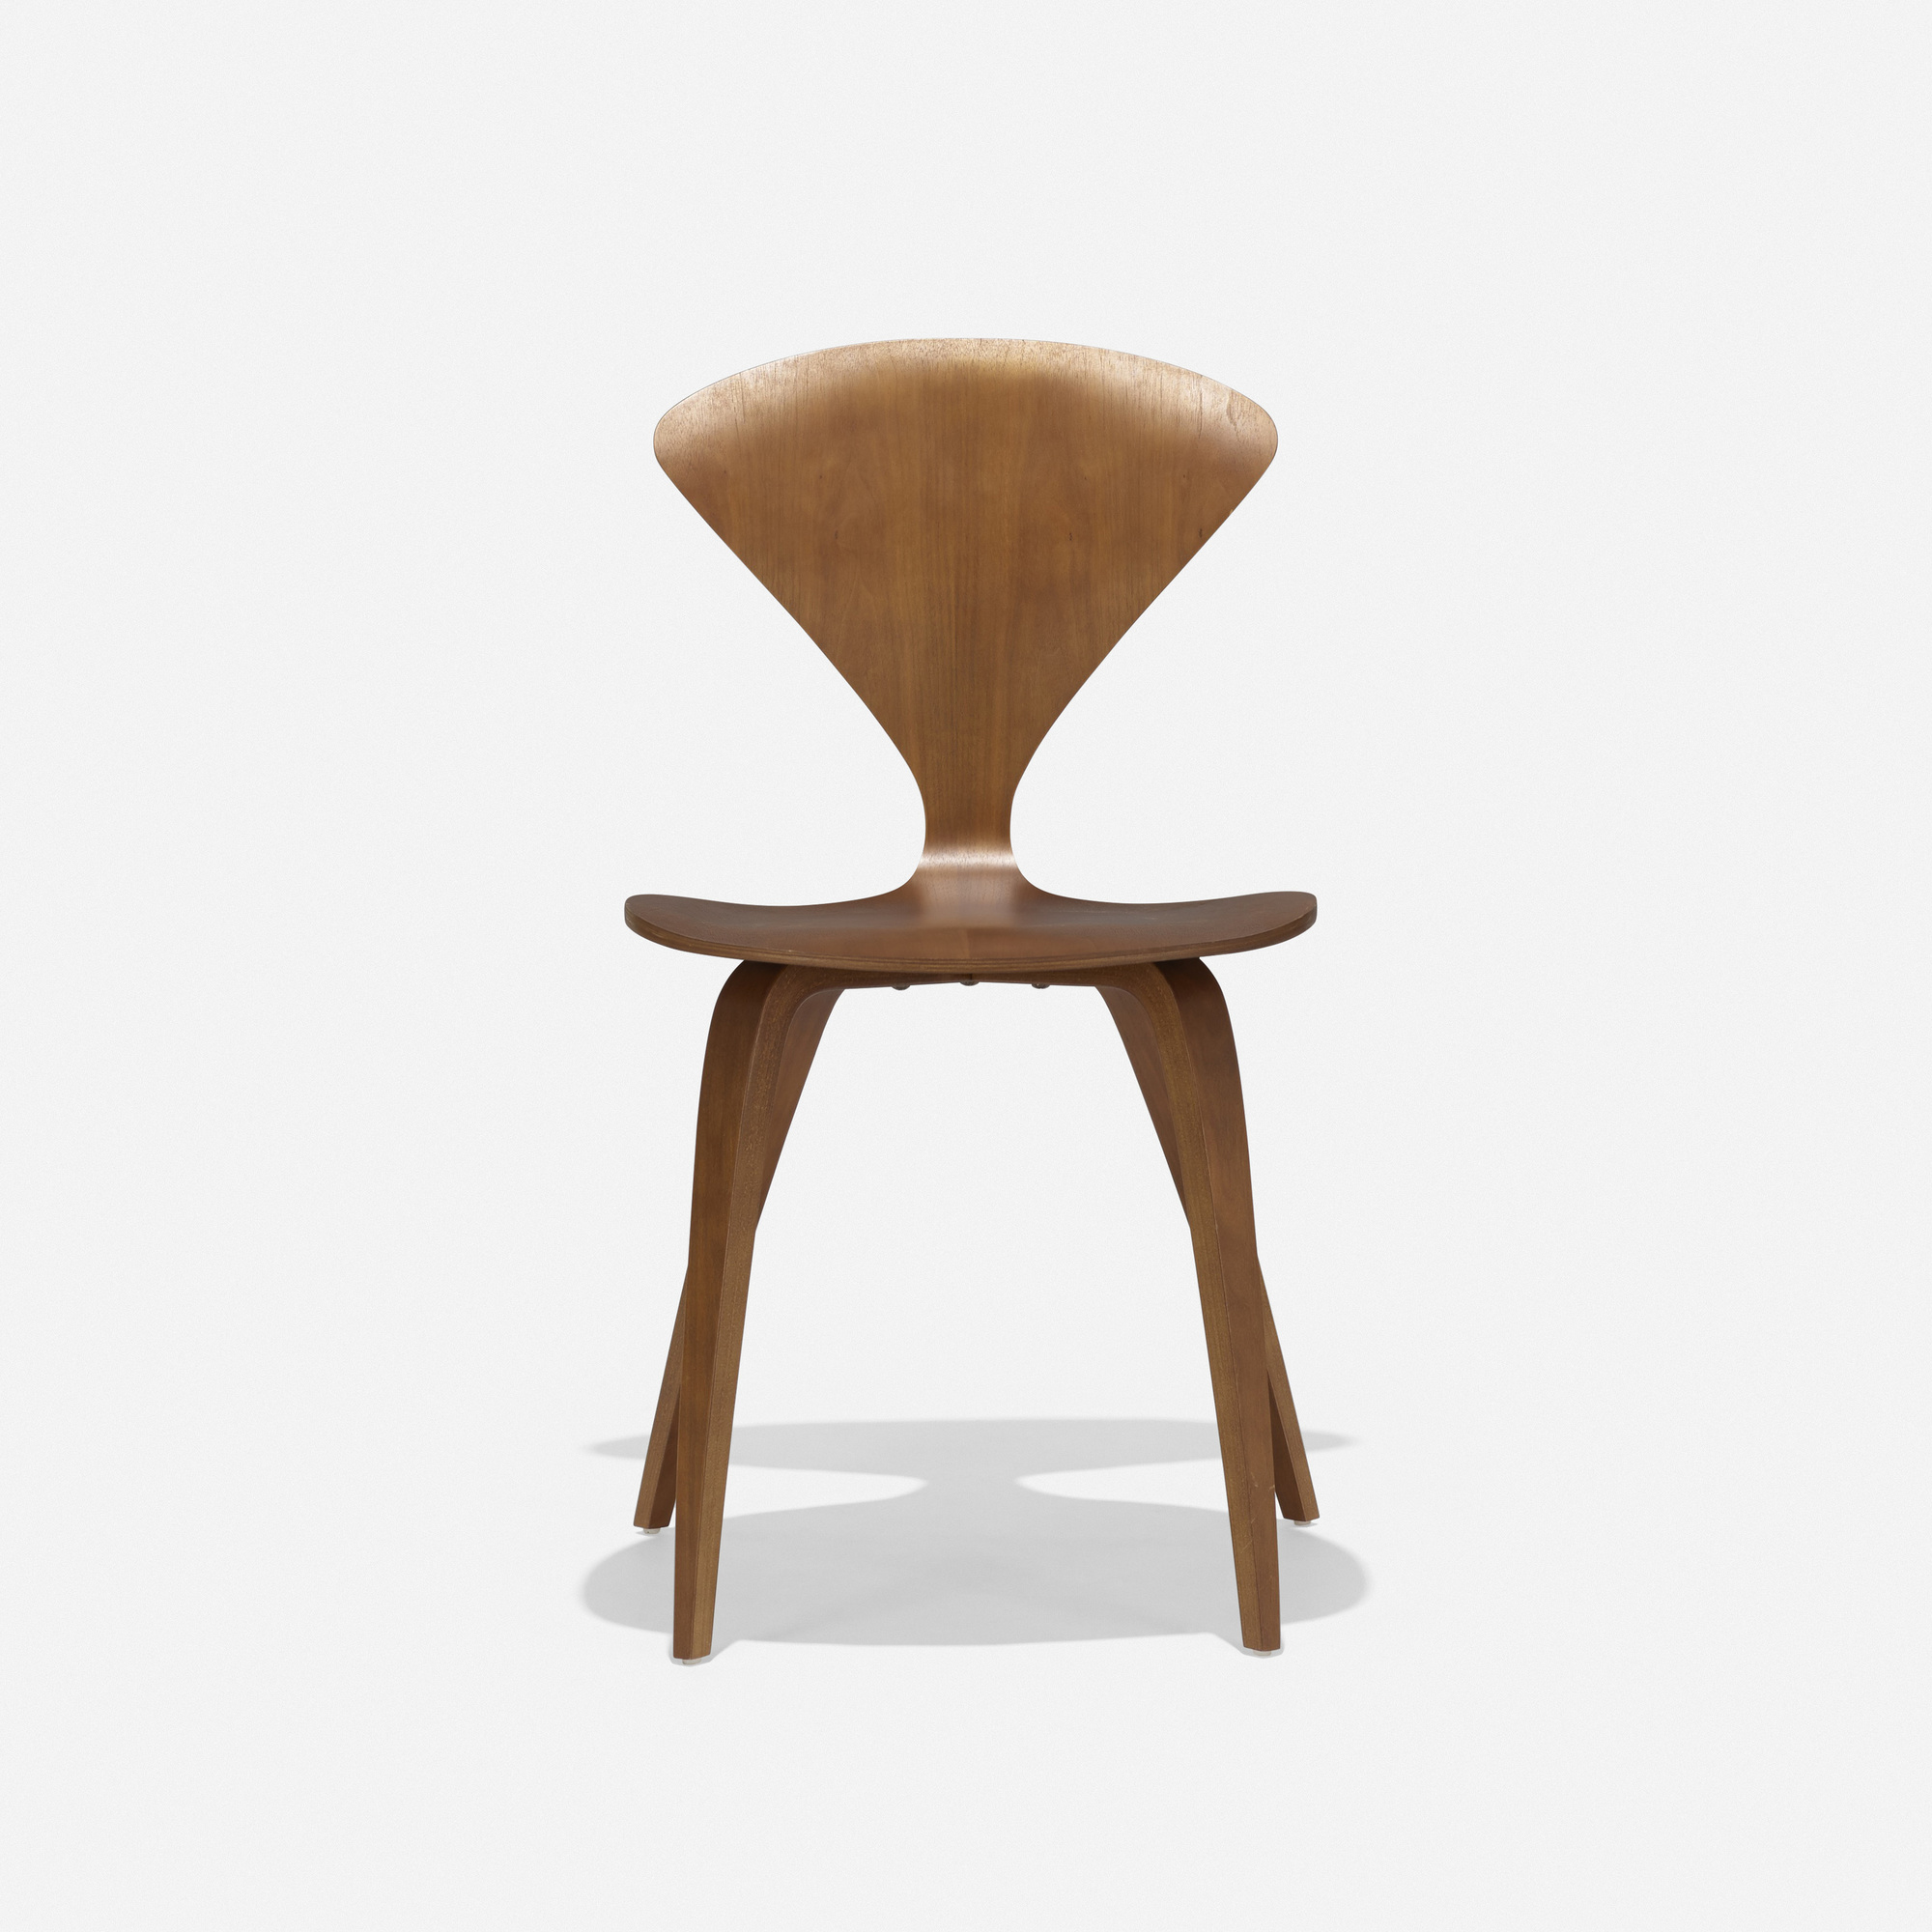 392: Norman Cherner / chair (2 of 3)